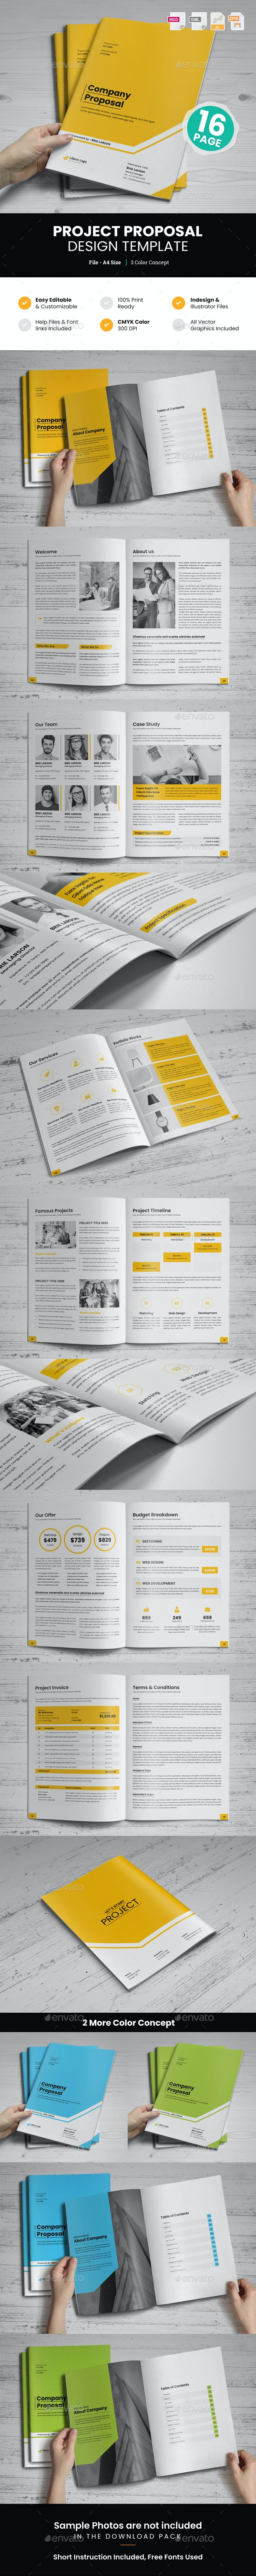 Project Proposal Design v2 - Proposals & Invoices Stationery